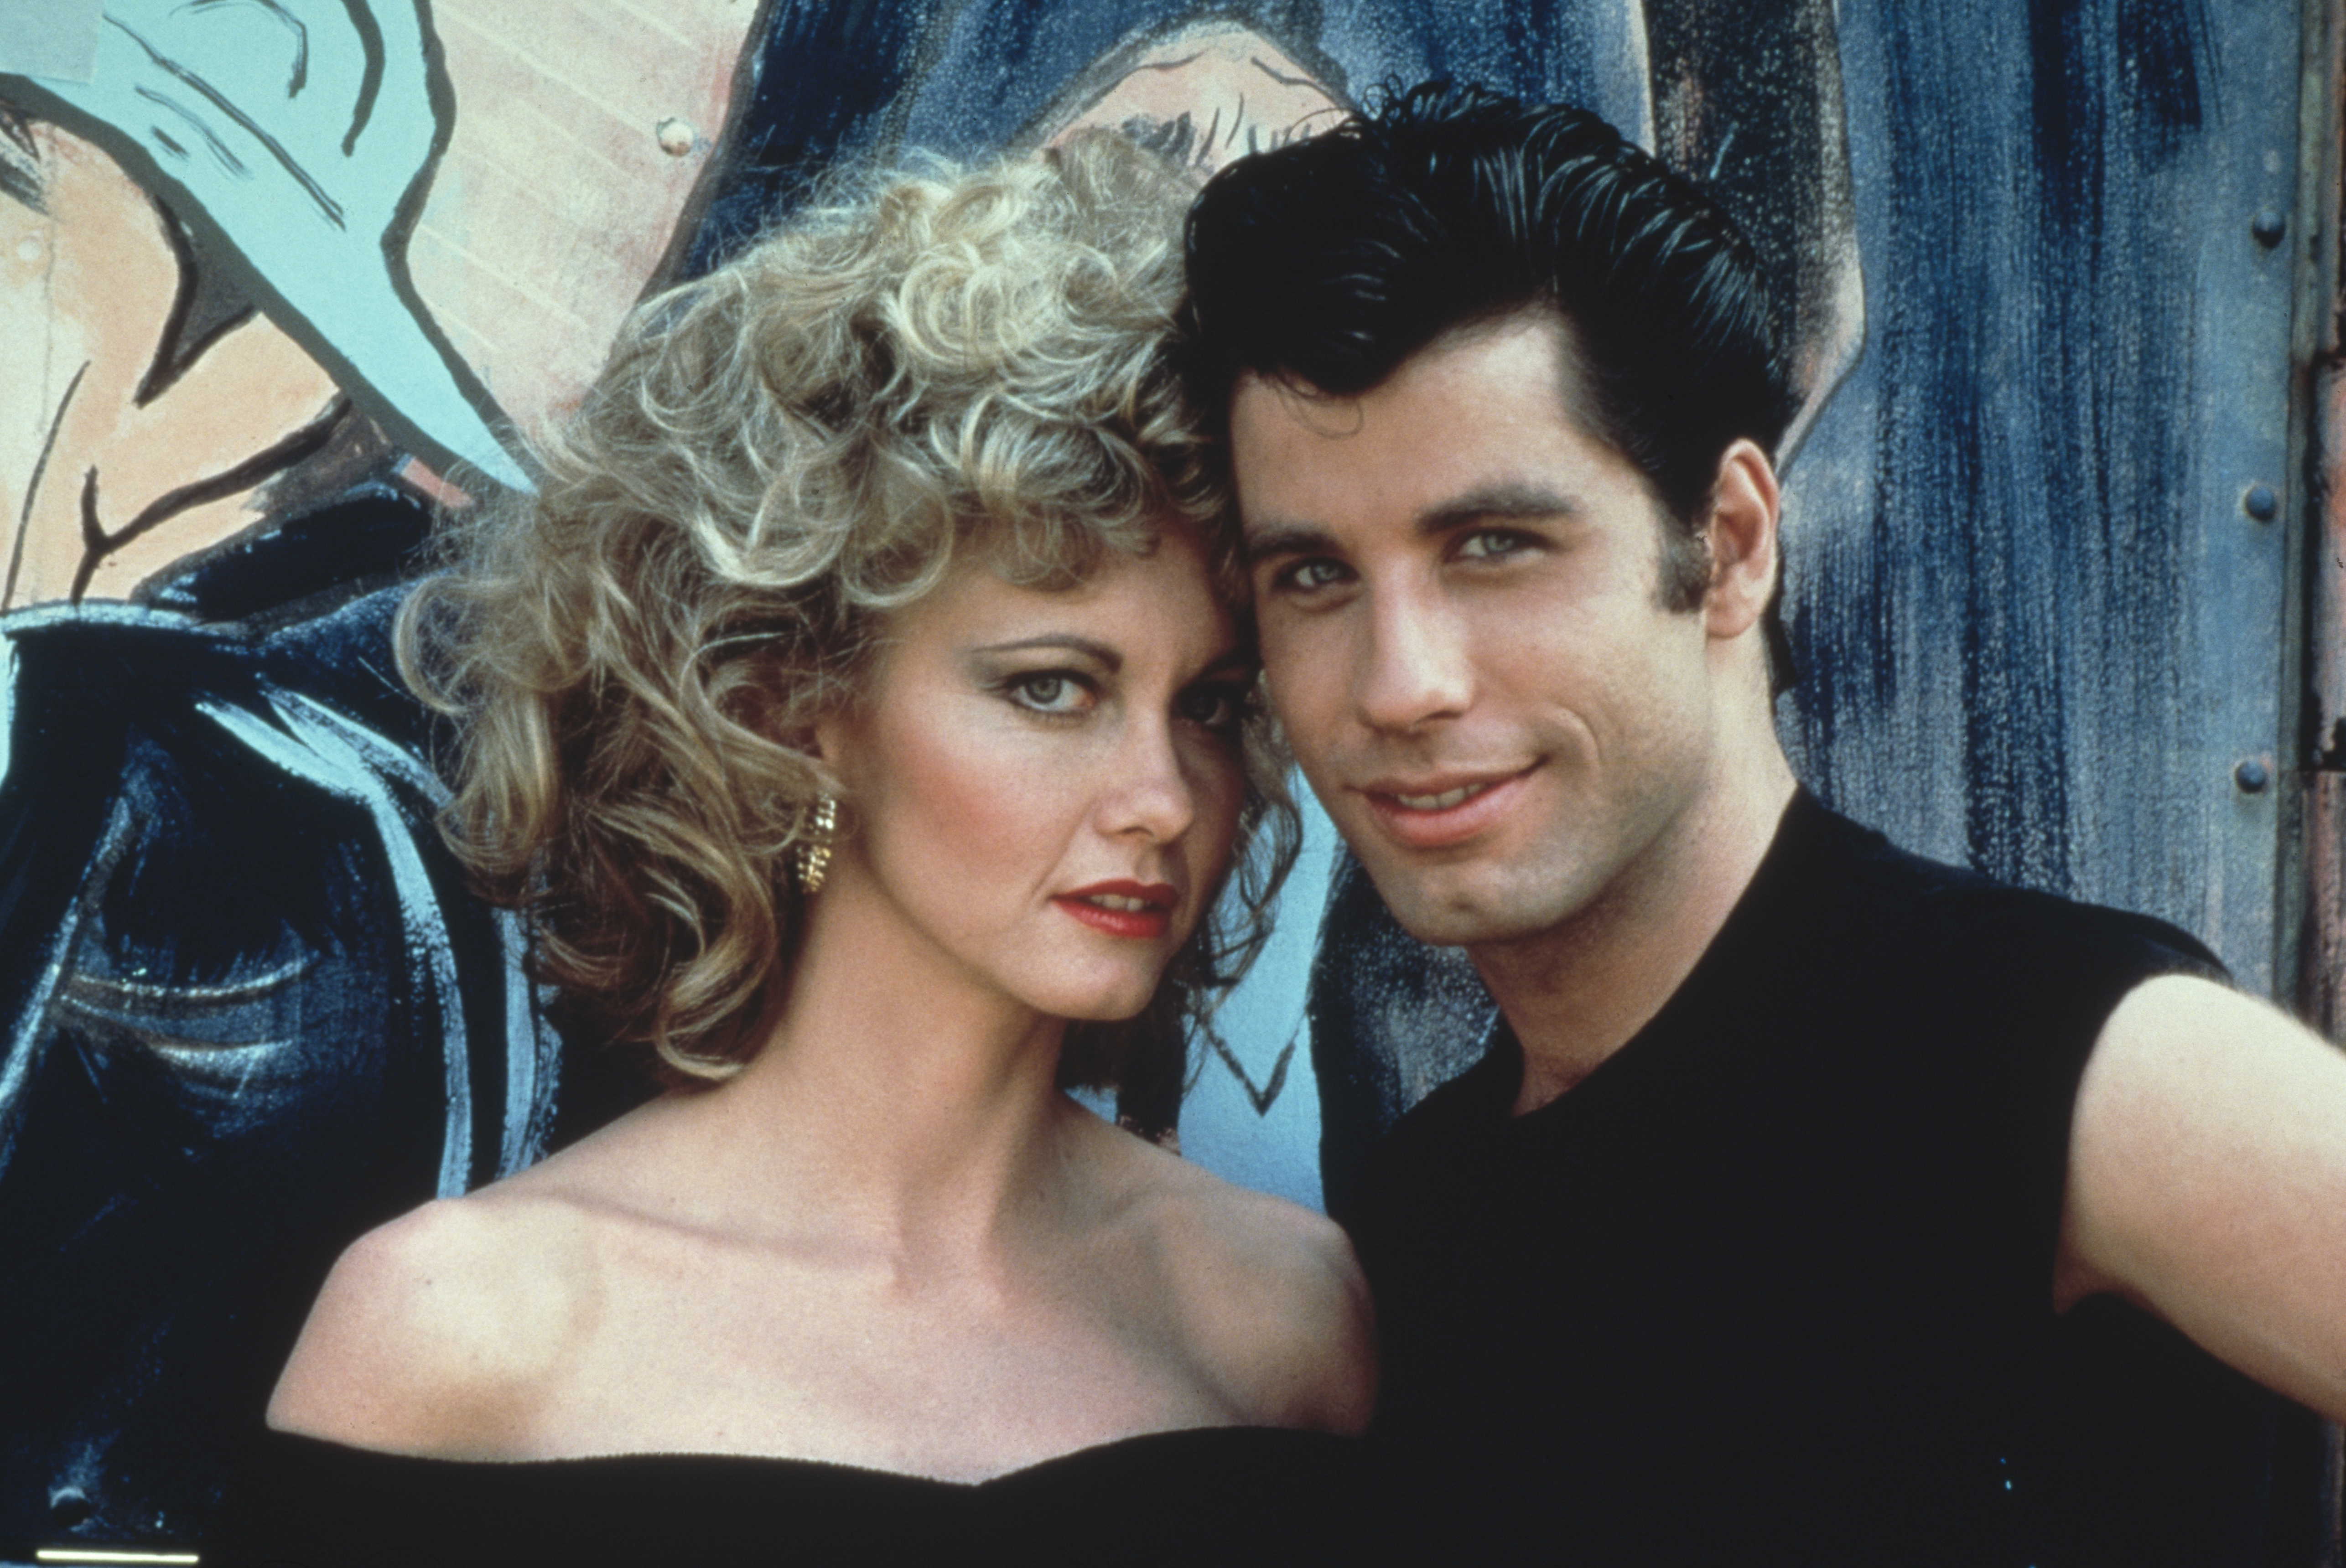 Australian singer and actress Olivia Newton-John and American actor John Travolta as they appear in the Paramount film 'Grease', 1978. (Photo by Paramount Pictures/Fotos International/Getty Images)